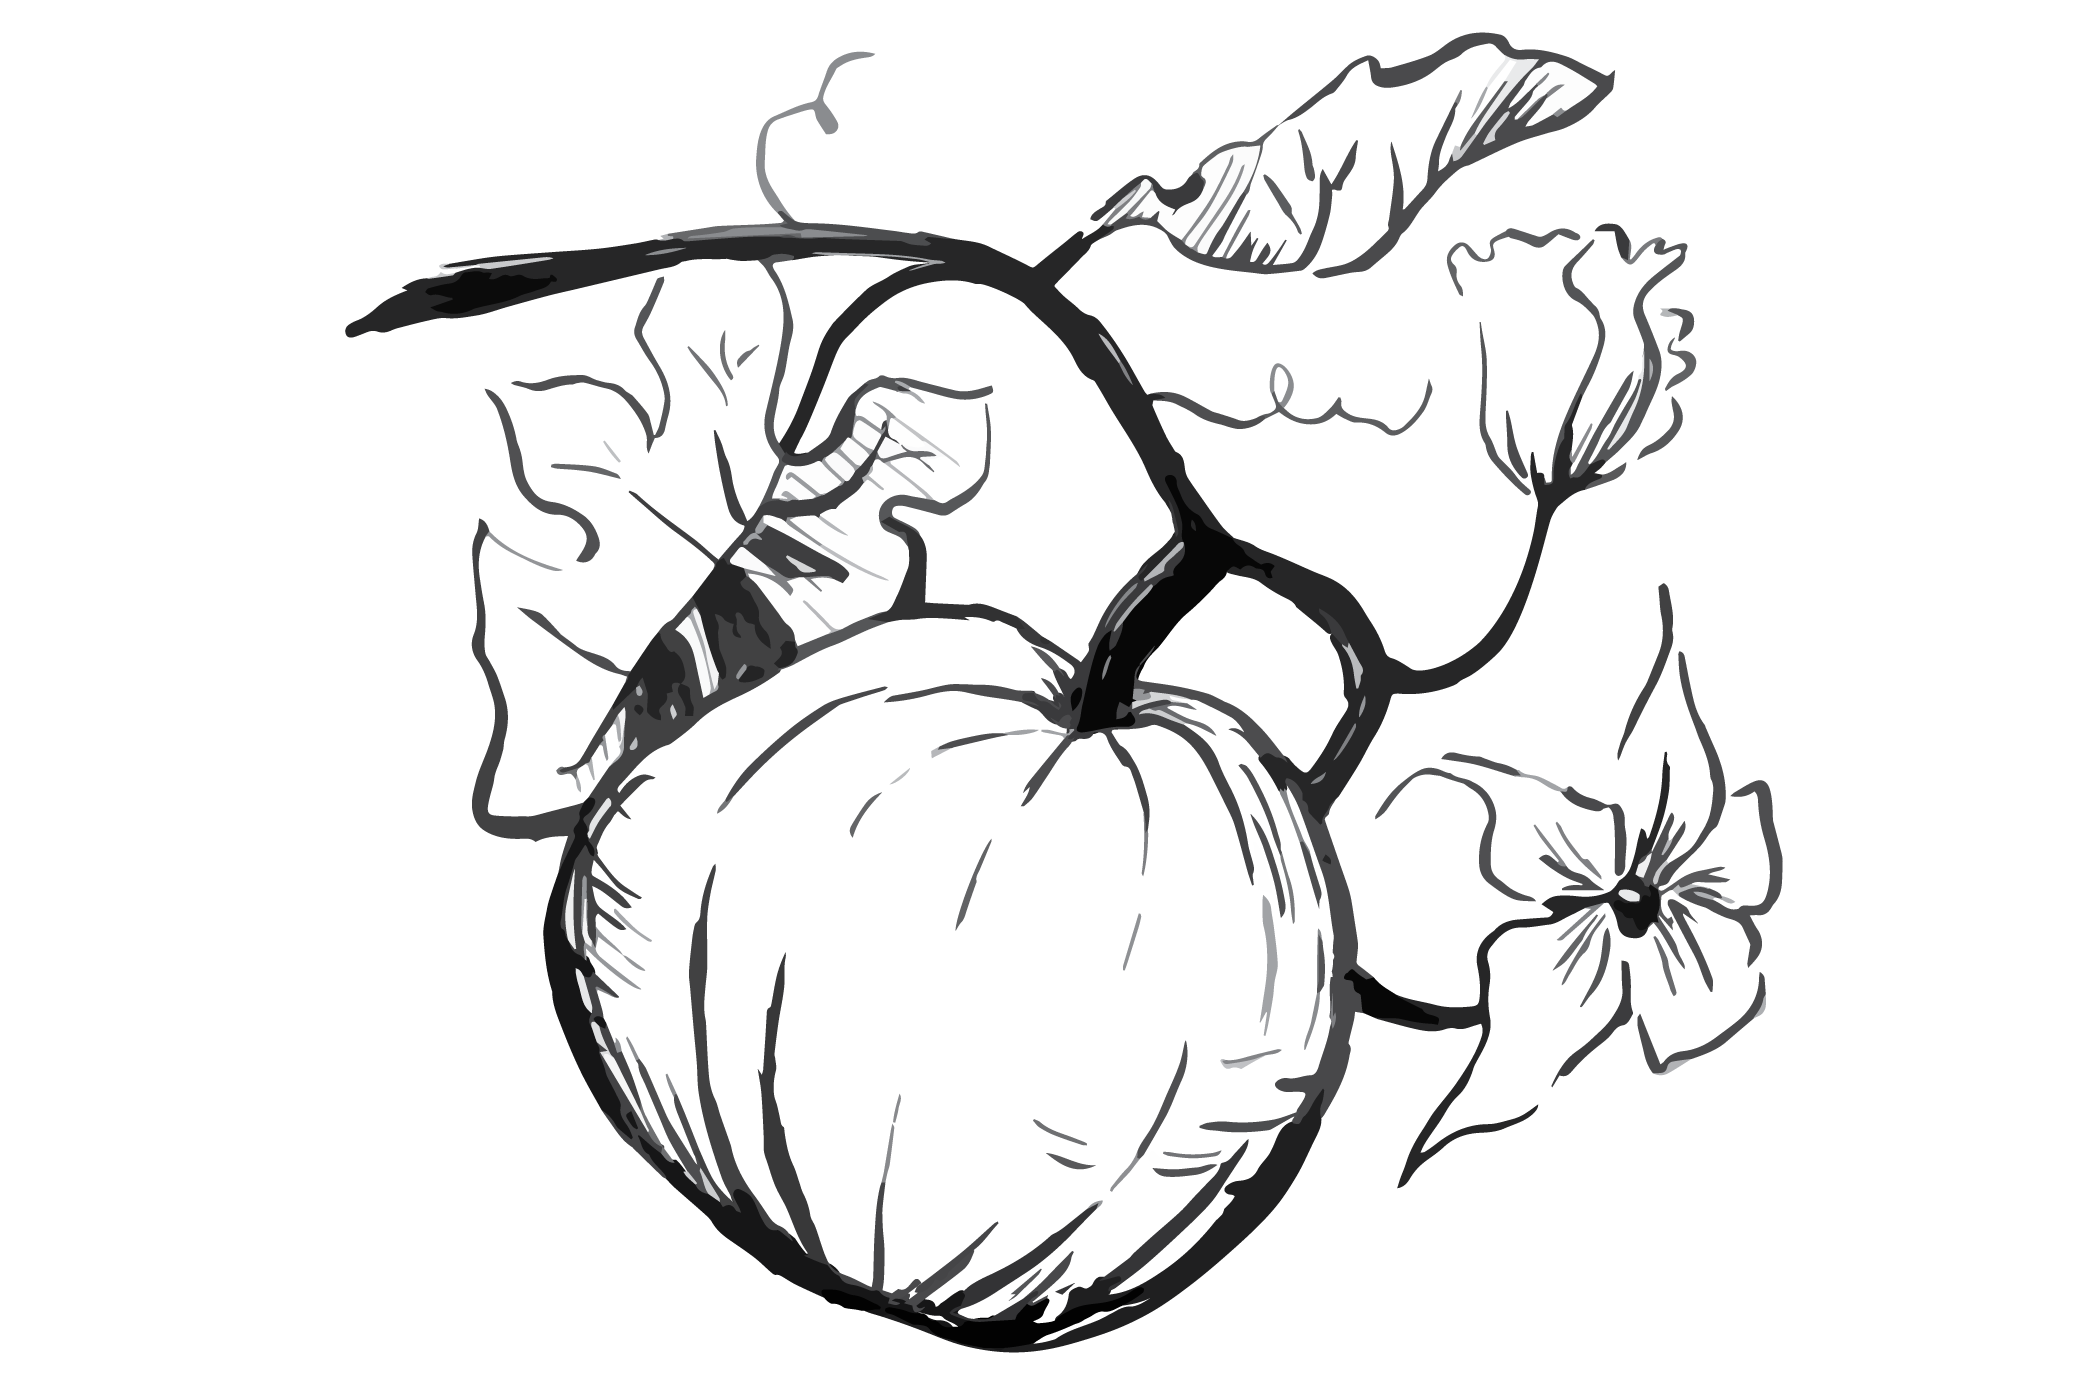 Pumpkin seed clipart black and white png library download Pumpkin Seed Drawing at GetDrawings.com | Free for personal use ... png library download